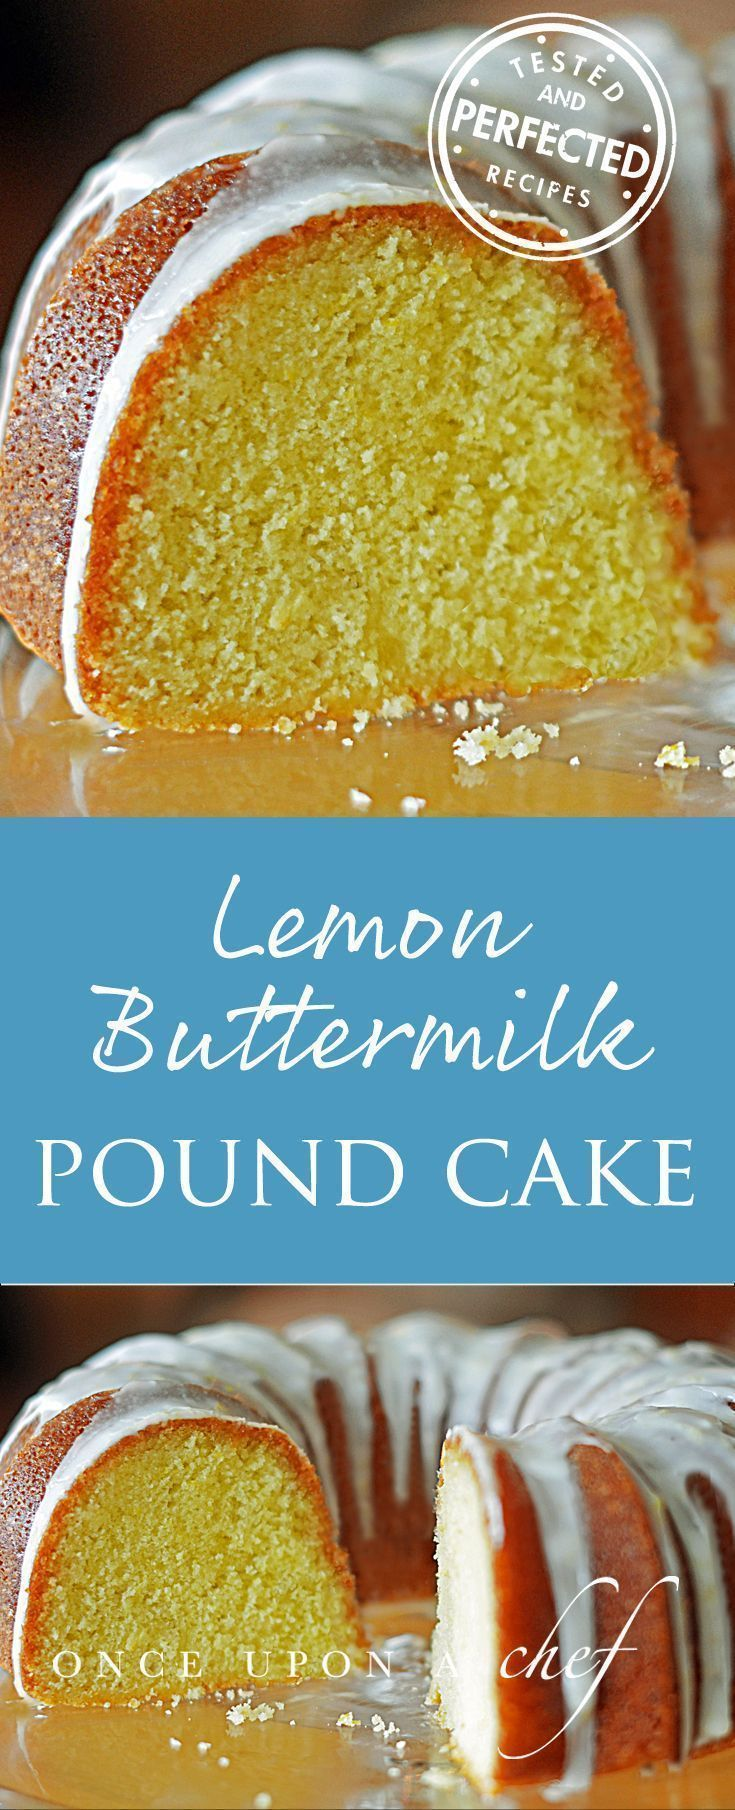 Lemon Buttermilk Pound Cake #lemoncake #poundcake #testedandperfected